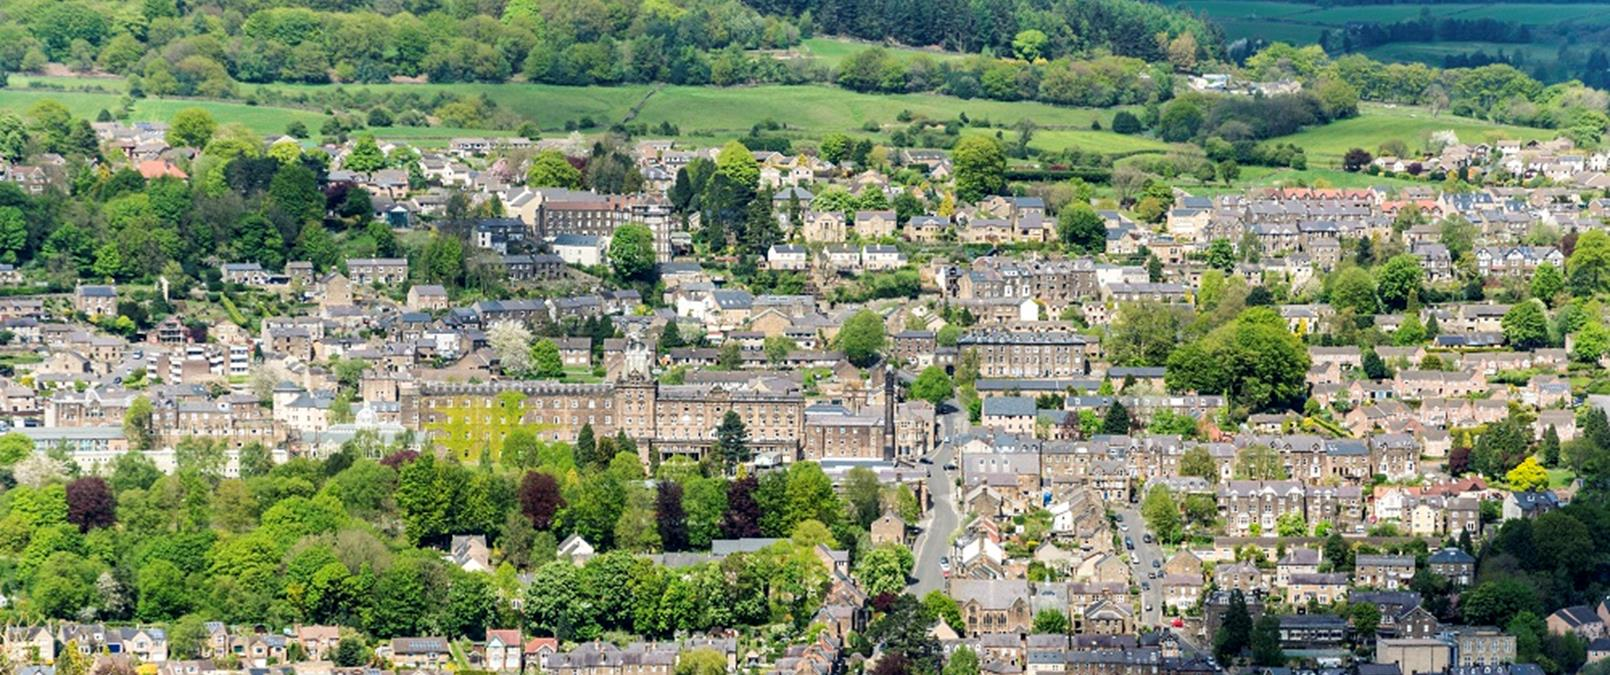 View of Matlock in Derbyshire